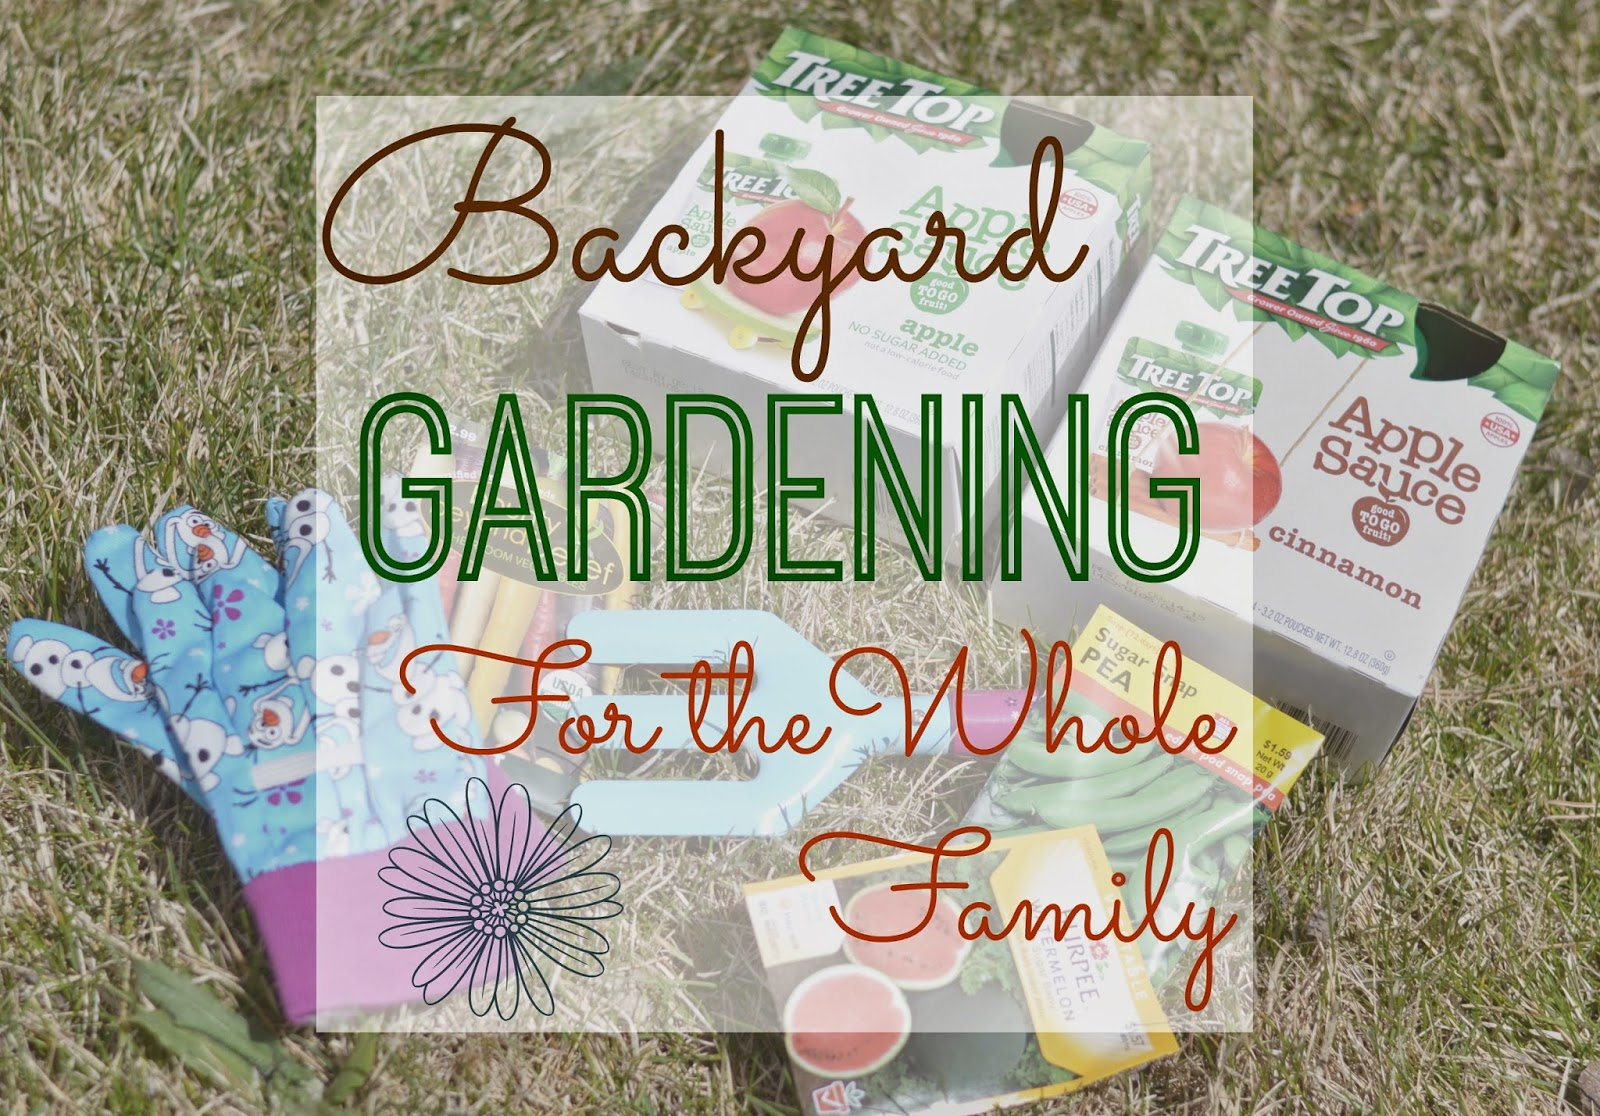 Backyard Gardening For The Whole Family